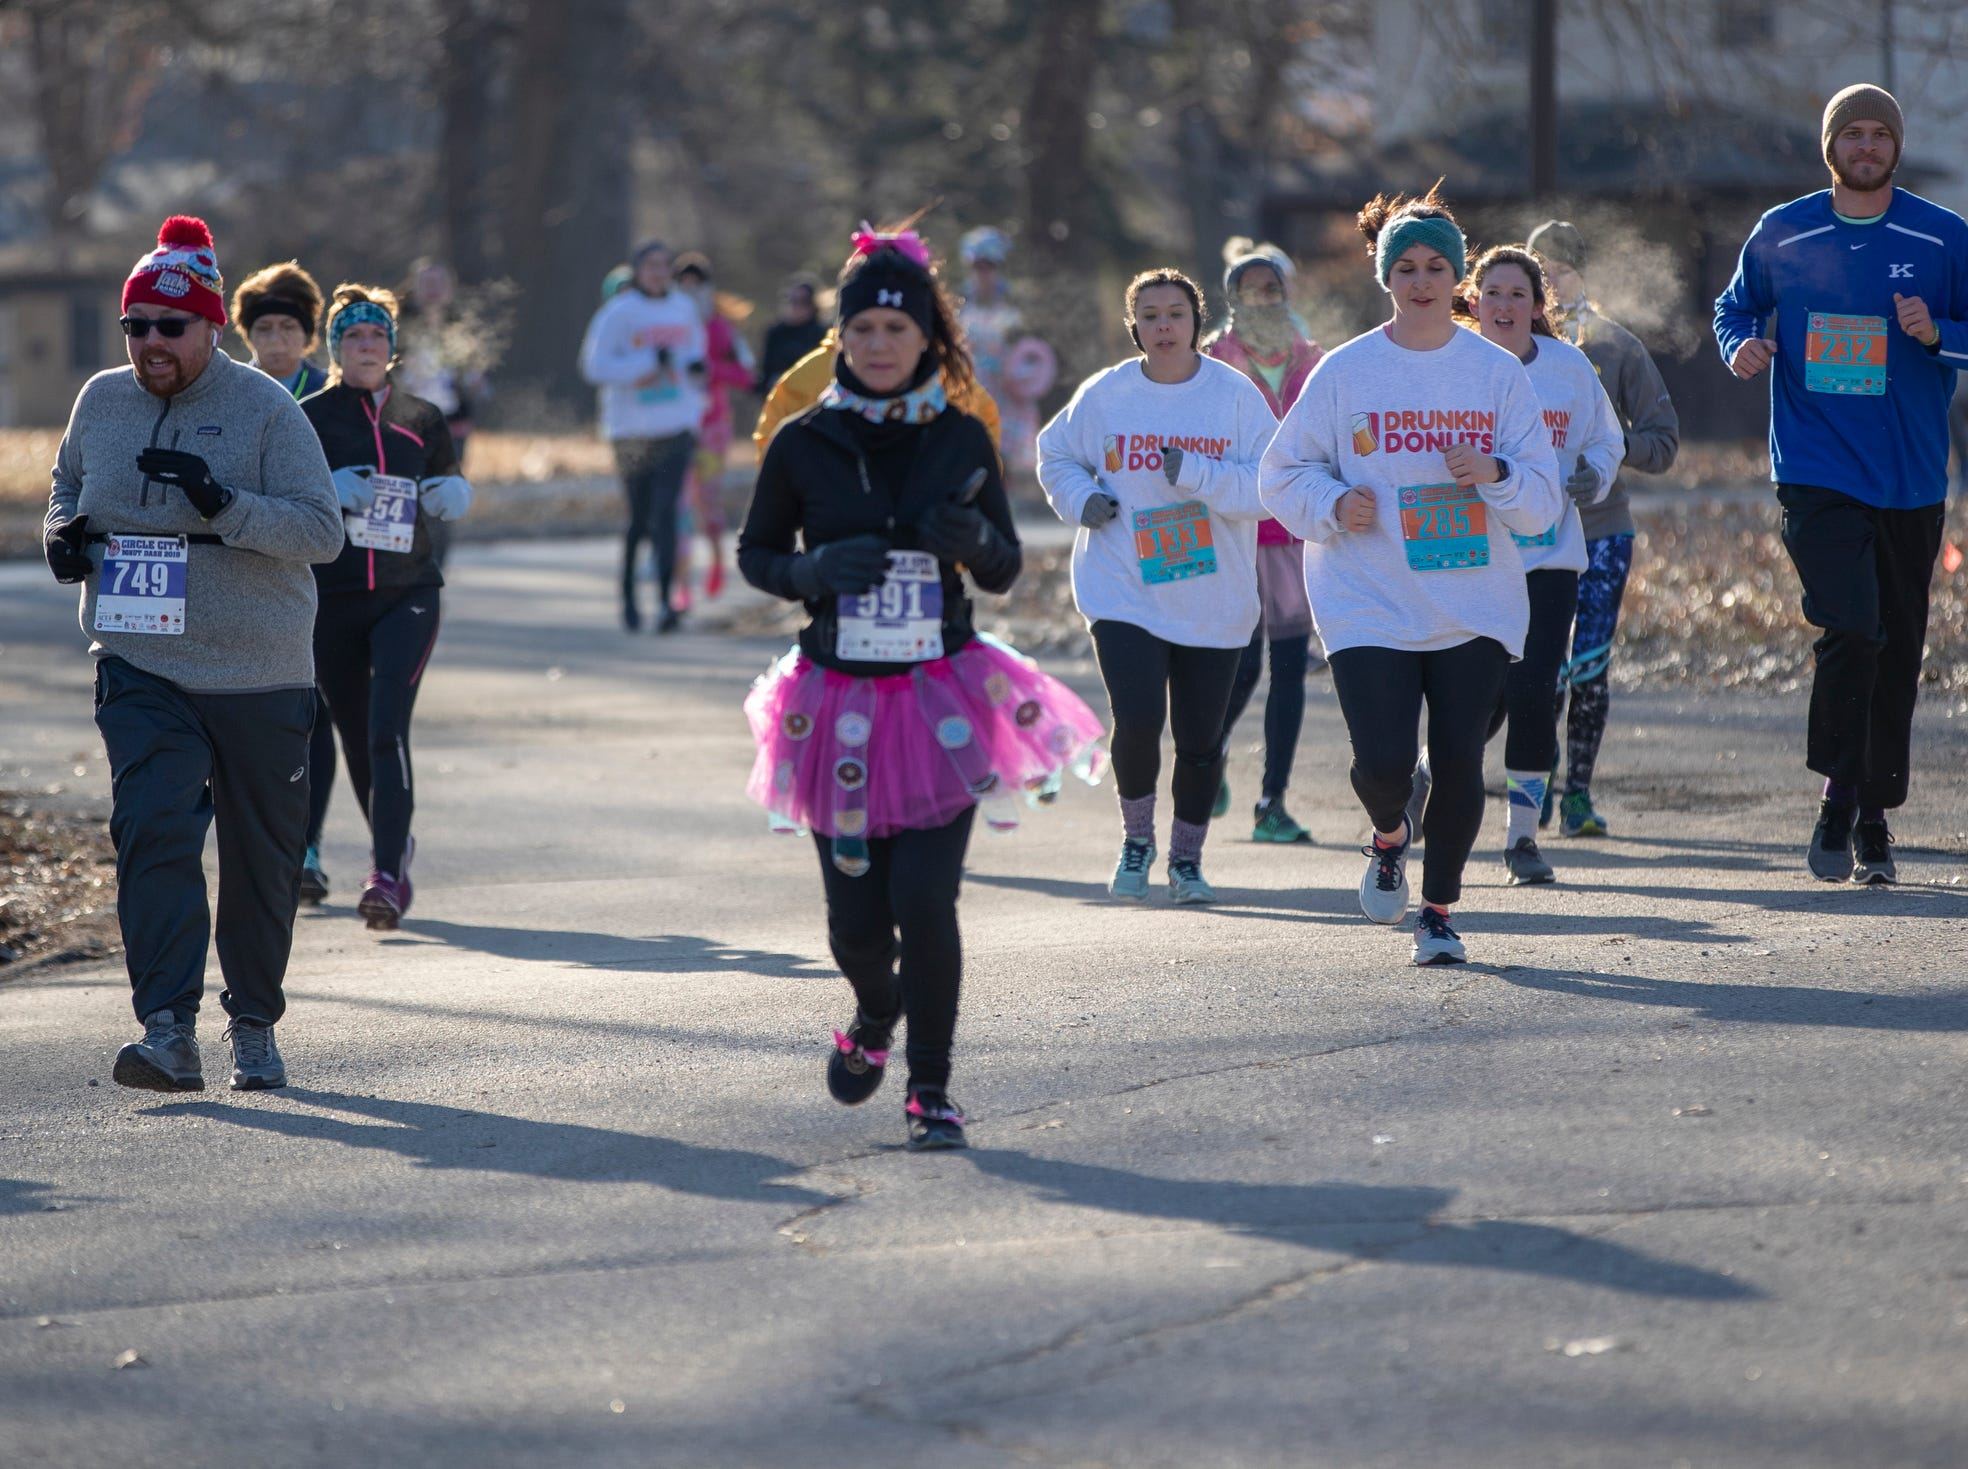 Entrants in the Circle City Donut Dash 5k, a five kilometer race that benefits Teachers' Treasures, Indianapolis, Saturday, Feb. 16, 2019. The race invites willing runners to eat a dozen doughnut holes at the halfway point in the event that helps provide school supplies for area school kids.